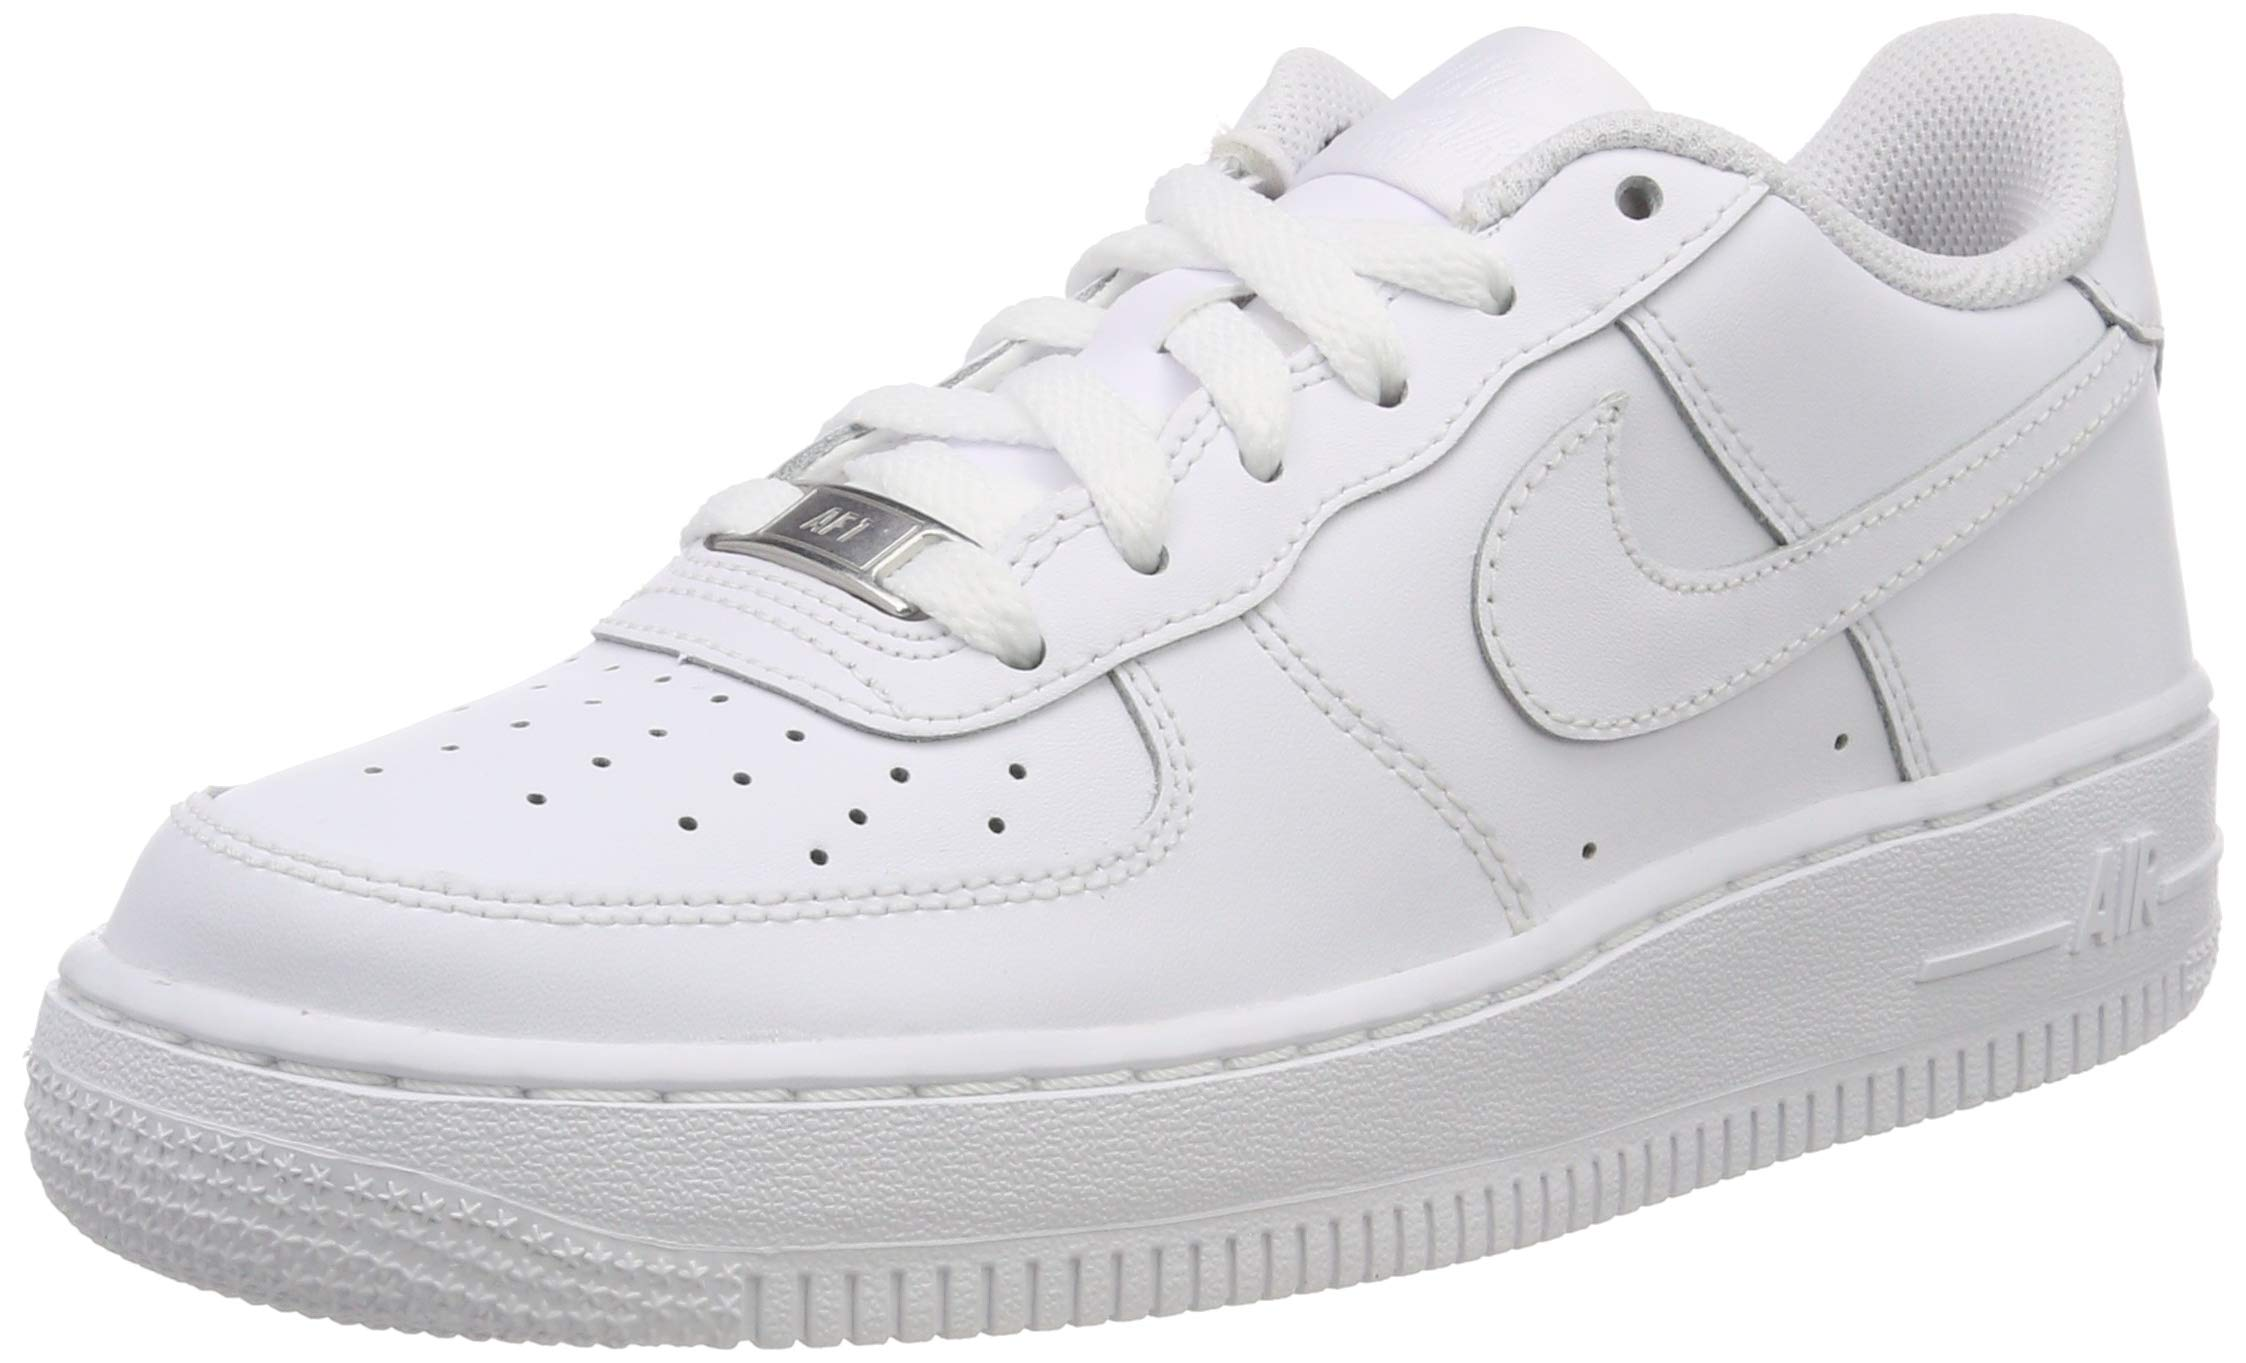 Nike Kids Air Force 1 (GS) White/White/White Basketball Shoe 6 Kids US